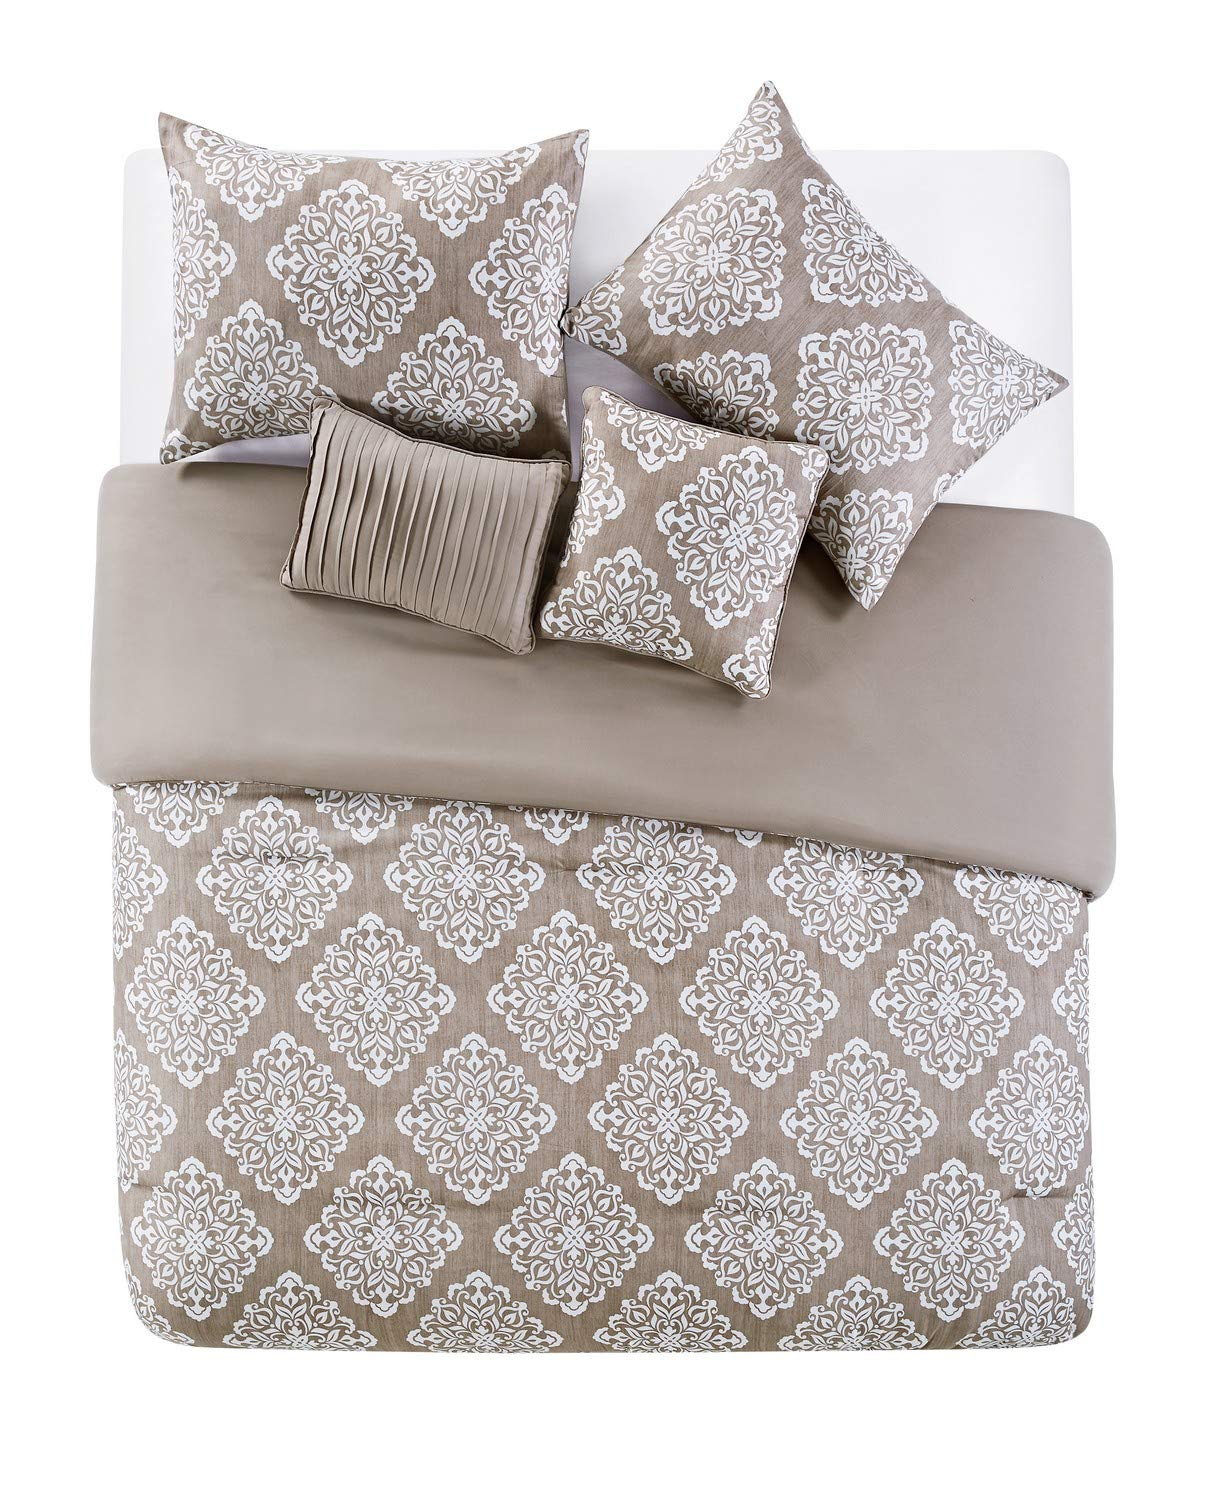 VCNY Home Aria Bohemian Medallion 5 Piece Bedding Comforter Set, King, Taupe